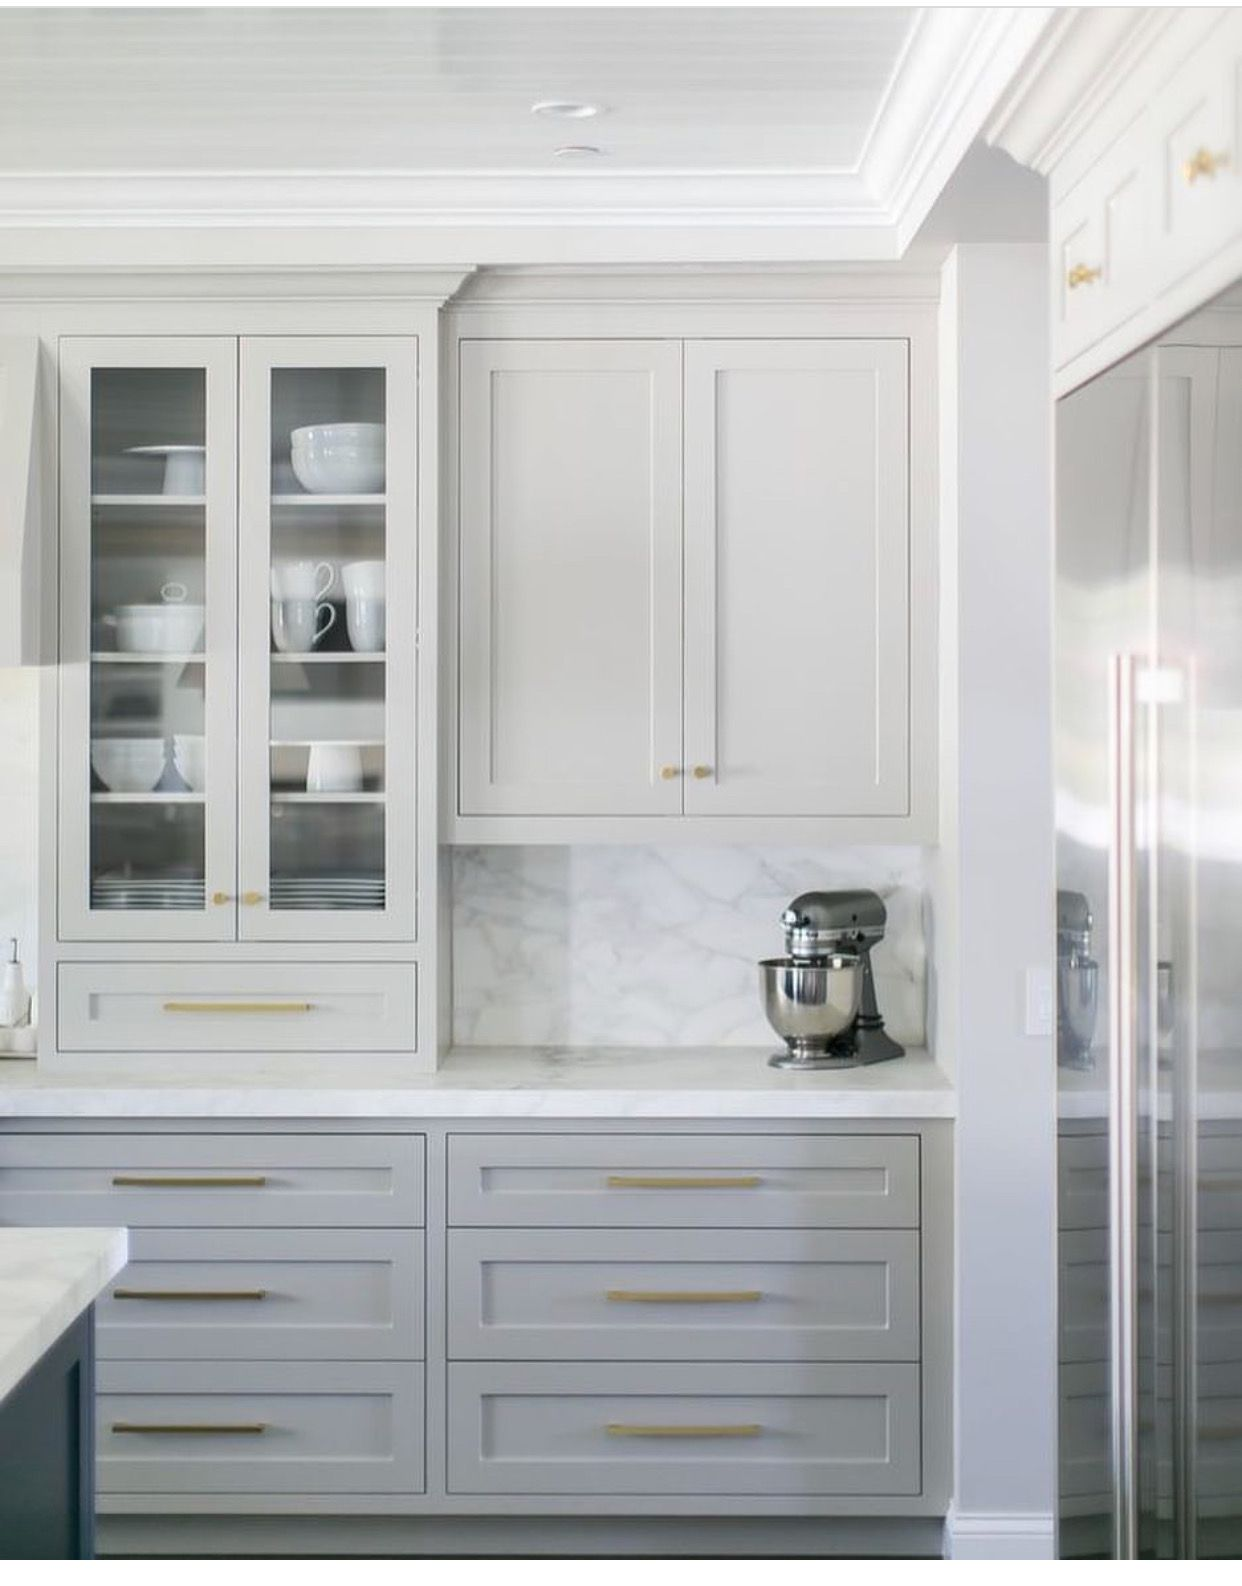 Like The Layout Of A Full Cabinet To Counter Next To A Half Cabinet Which Creates A Space For Applicance Grey Kitchen Cabinets Kitchen Renovation Grey Cabinets